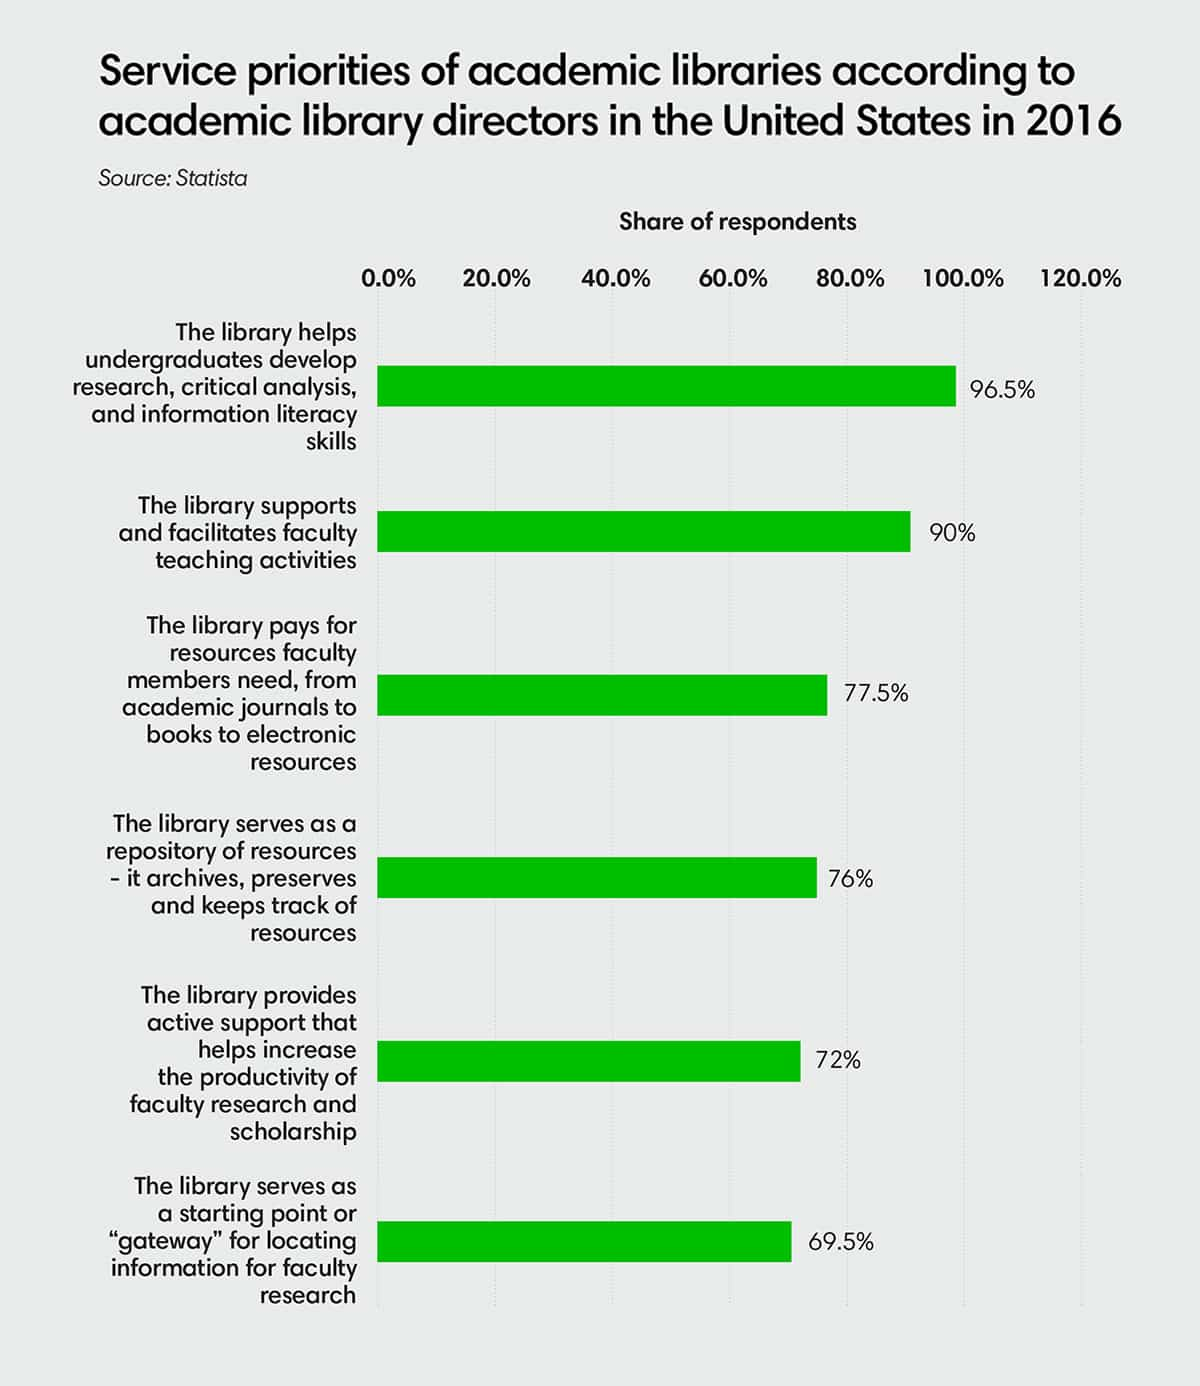 Service priorities of academic libraries according to academic library directors in the United States in 2016